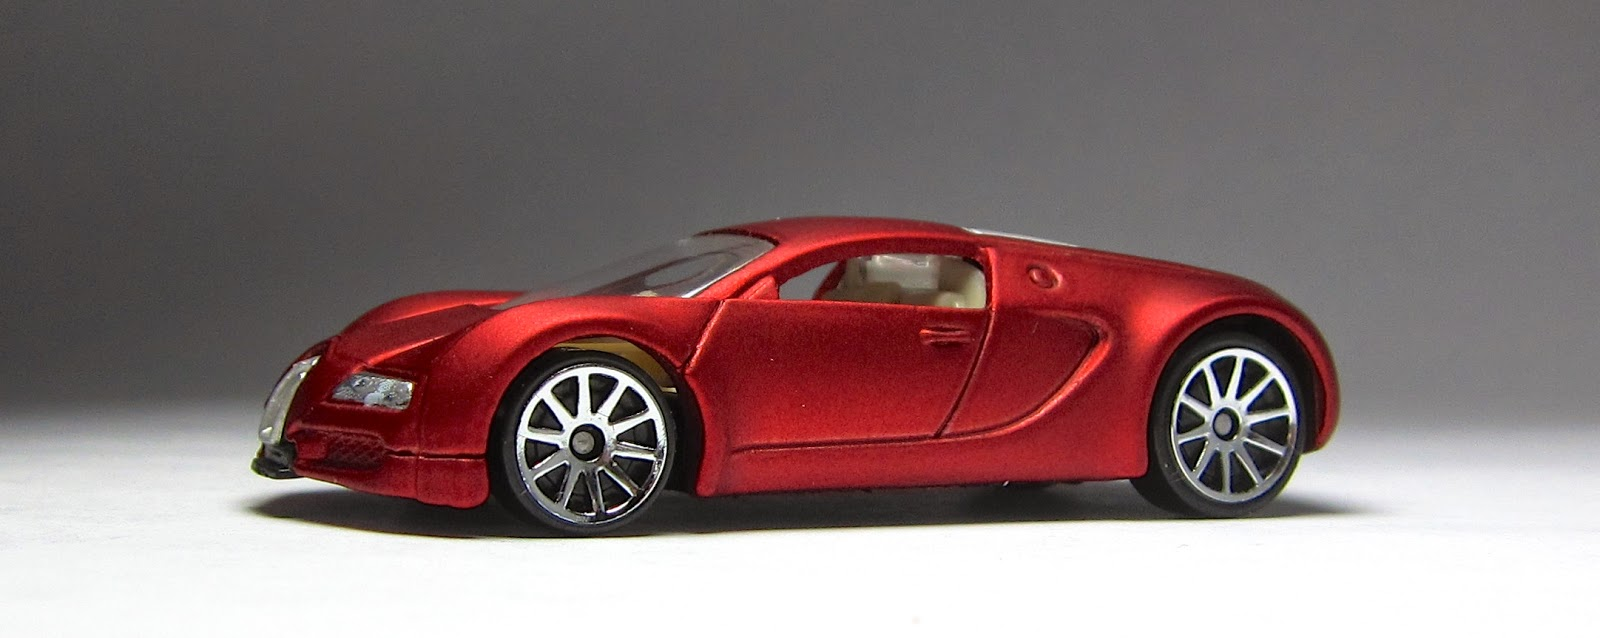 hot wheels bugatti veyron red ebay auto design tech. Black Bedroom Furniture Sets. Home Design Ideas